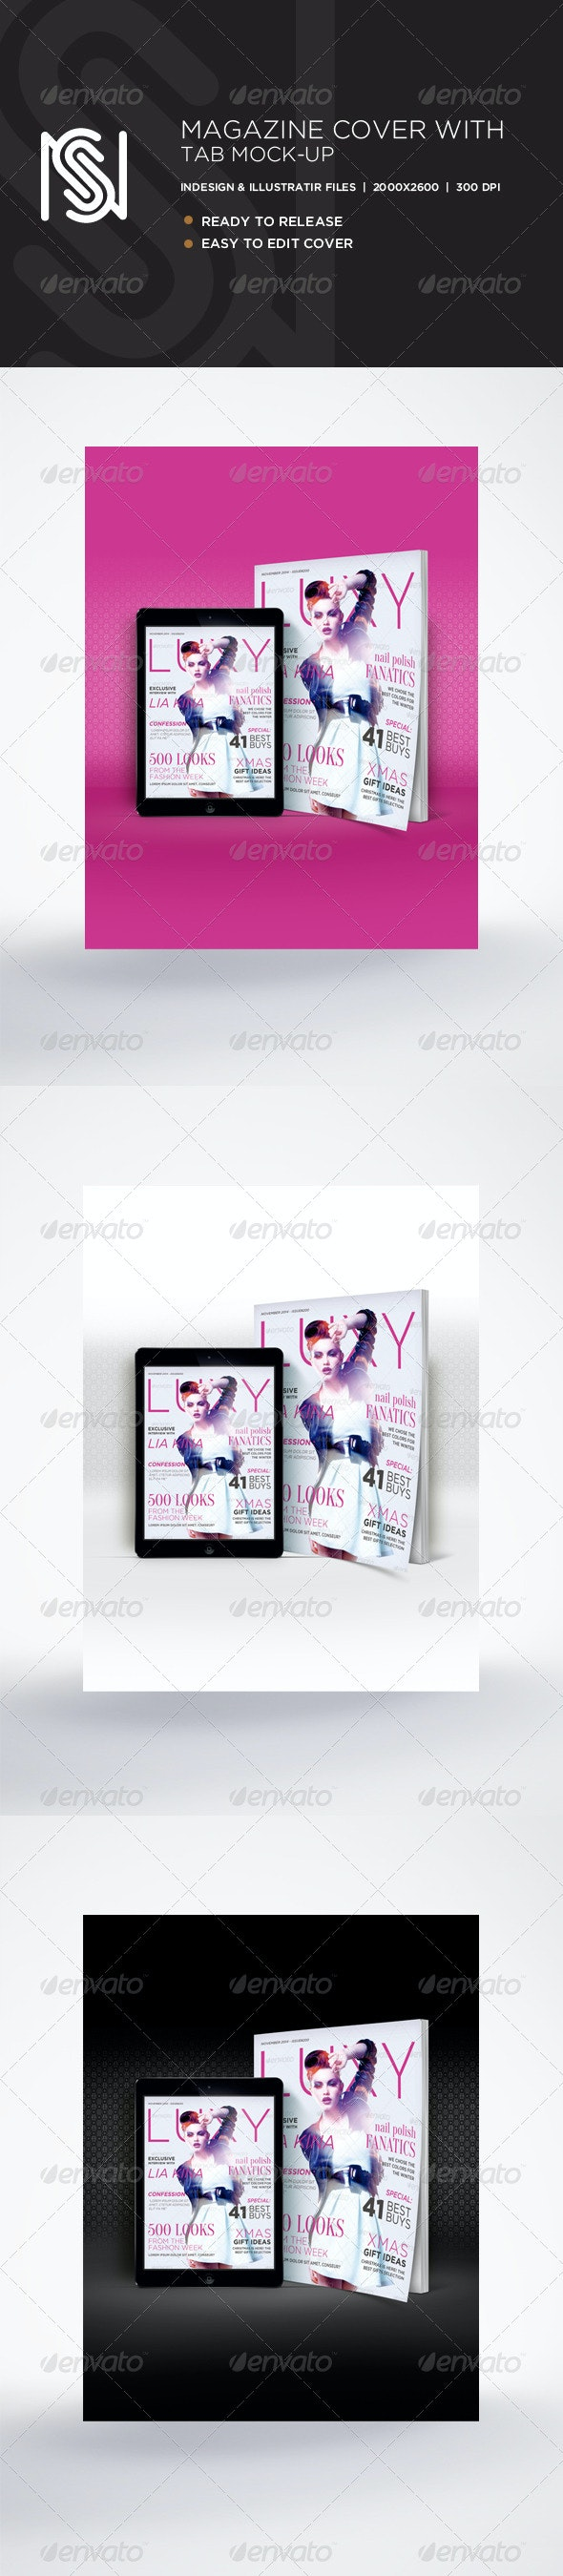 Magazine Cover & Tablet Mockup - Magazines Print